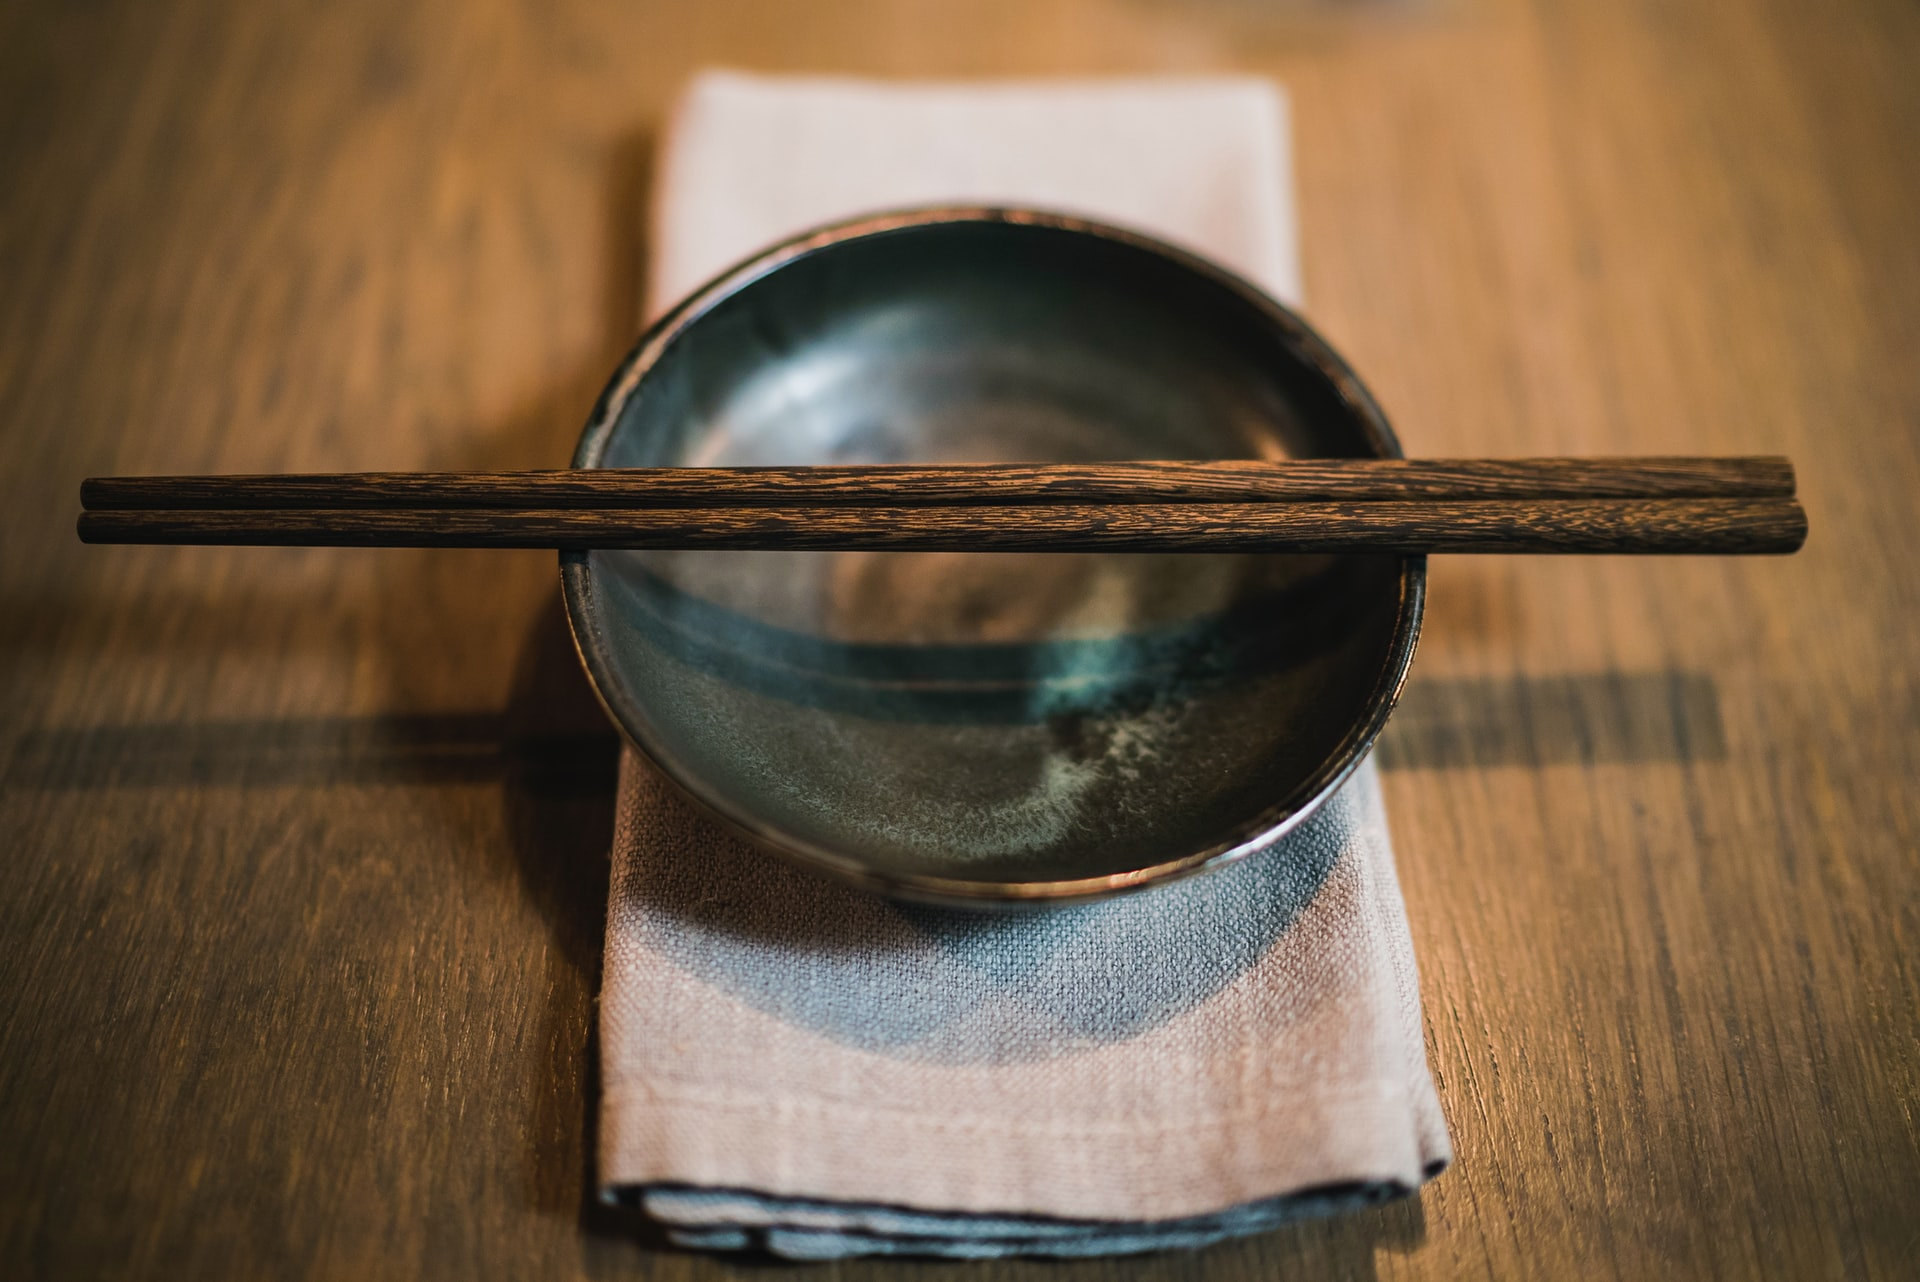 Properly oiled dark wooden bowl with matching chopsticks